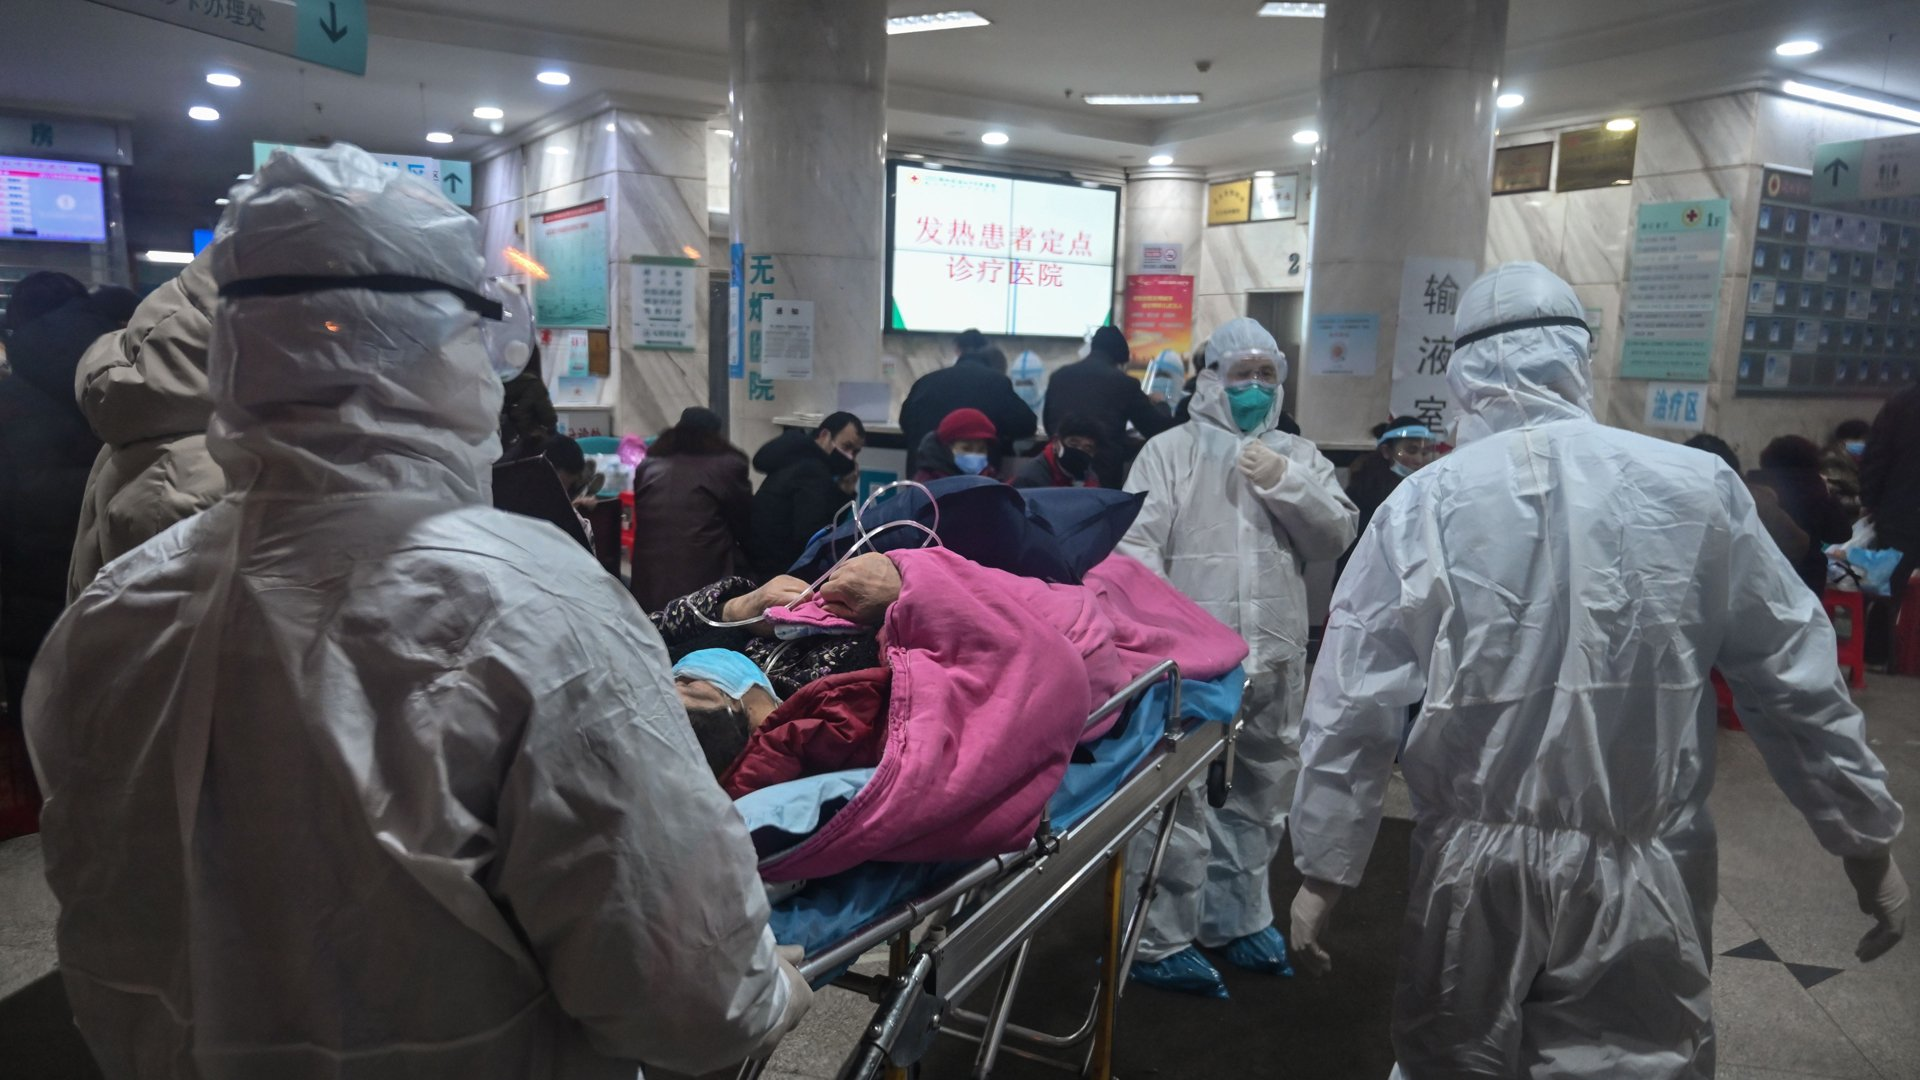 In this photo taken on January 25, 2020, medical staff wearing protective clothing to protect against a previously unknown coronavirus arrive with a patient at the Wuhan Red Cross Hospital in Wuhan. (Credit: Hector Retamal/AFP/Getty Images)